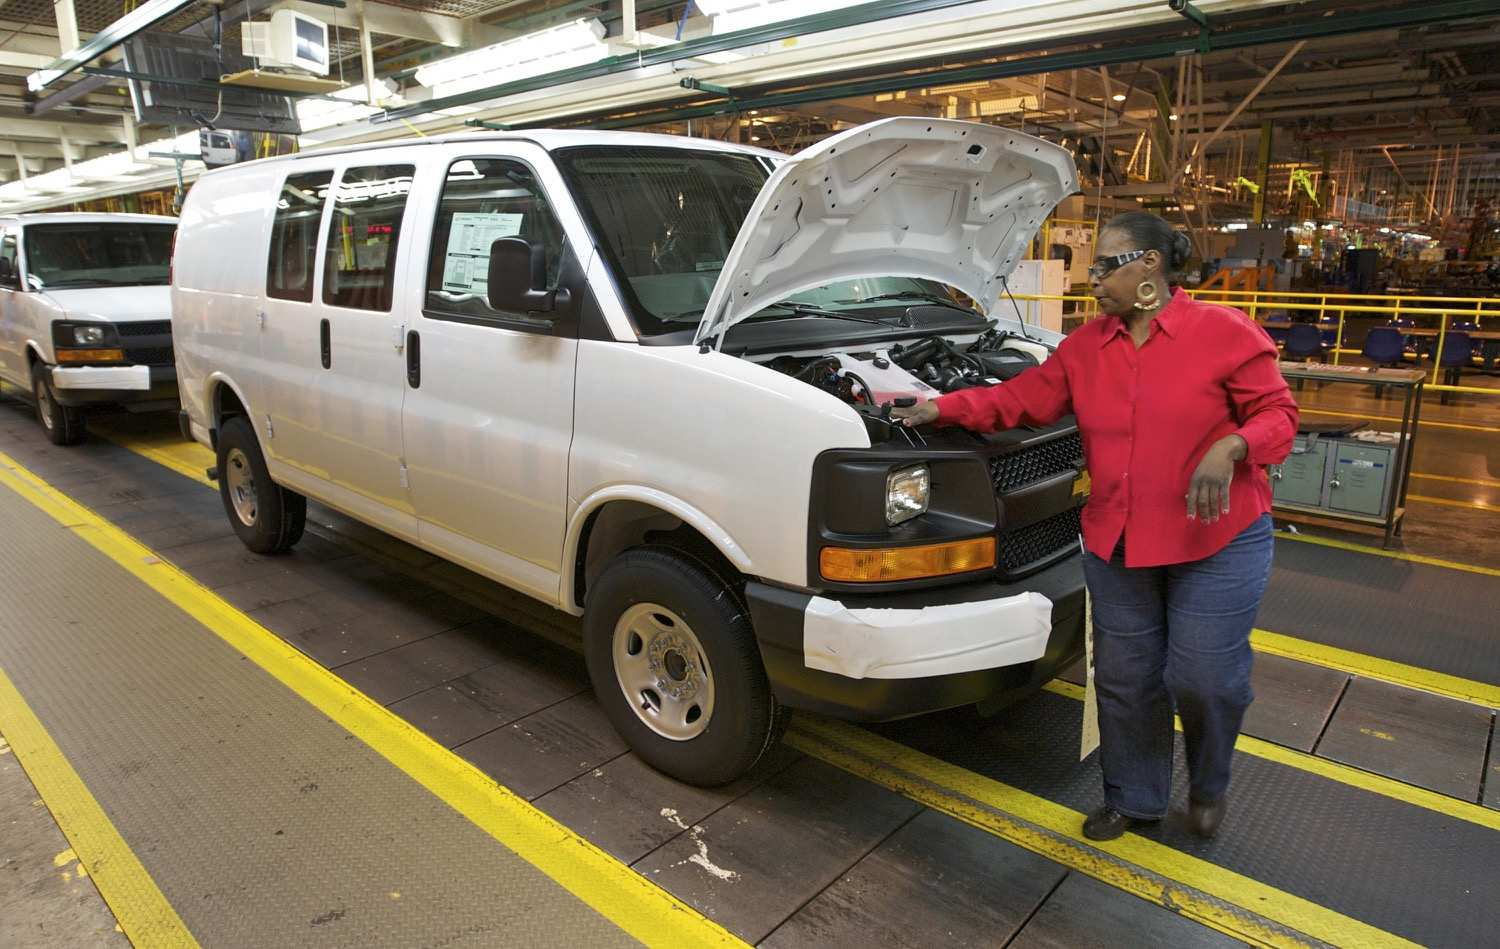 75 Gallery of Chevrolet Express Van 2020 Performance and New Engine for Chevrolet Express Van 2020